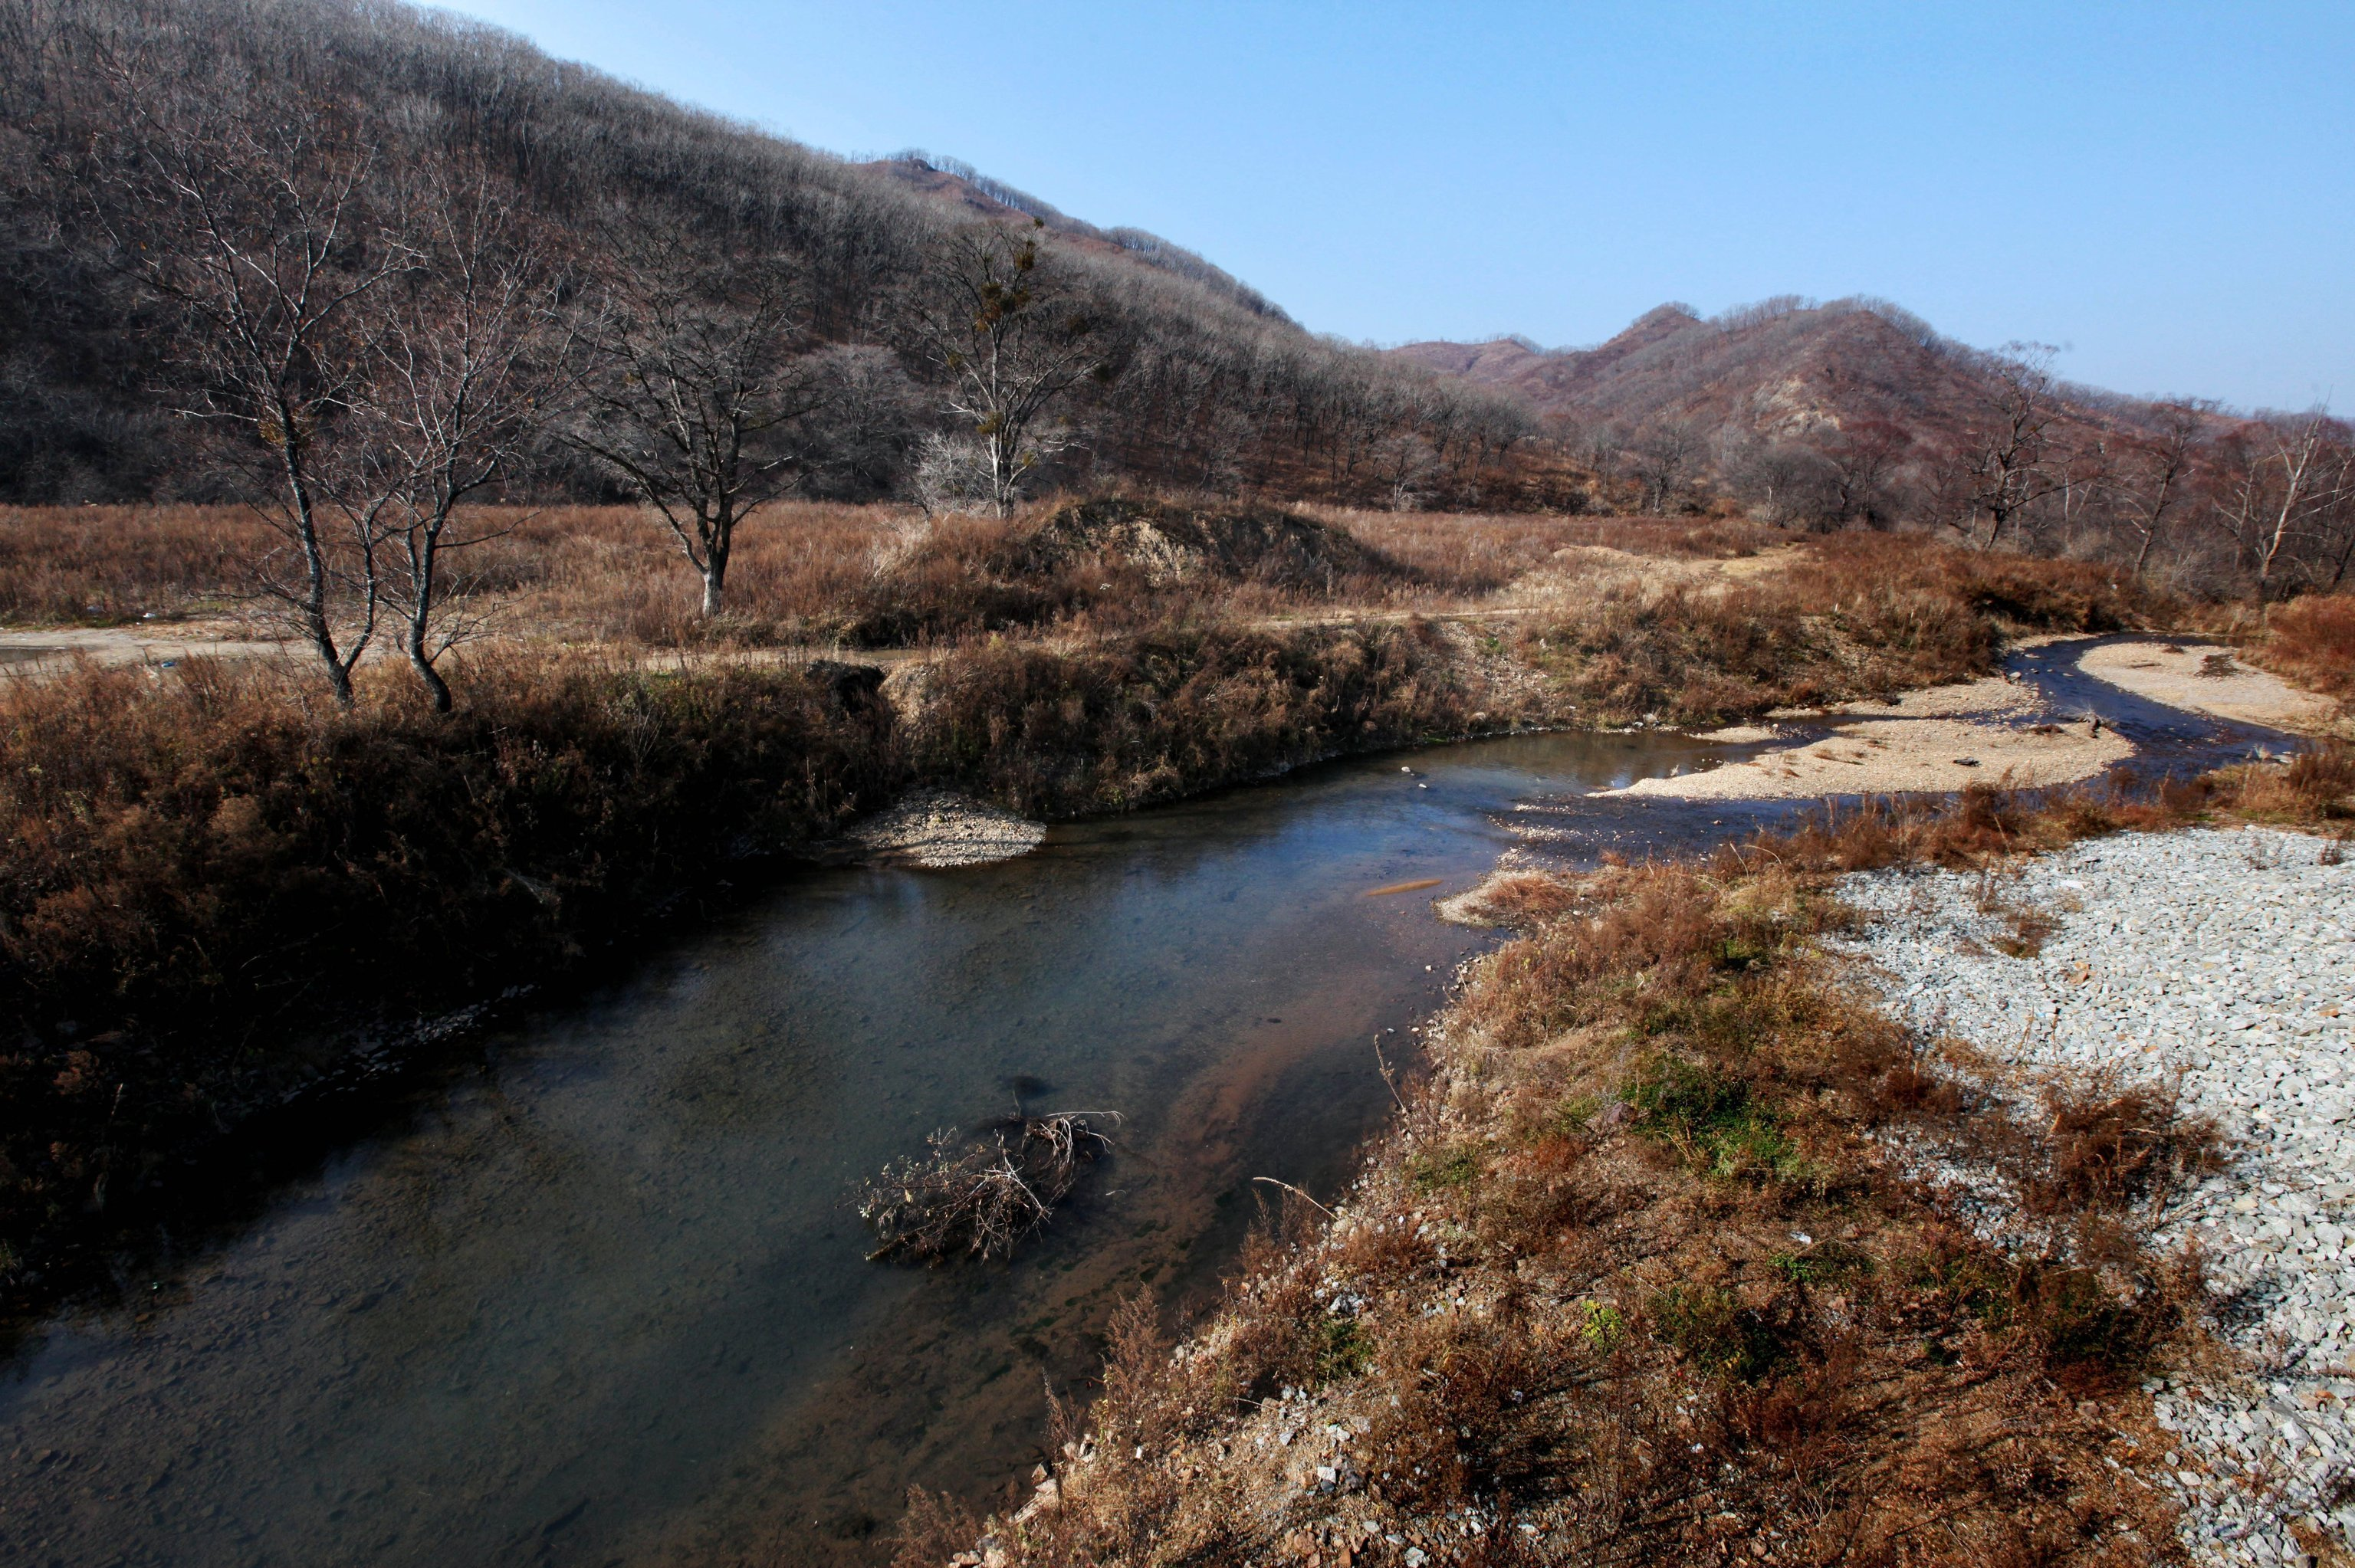 Barabash village in the Land of the Leopard National Park in the Khasan district of Primorye